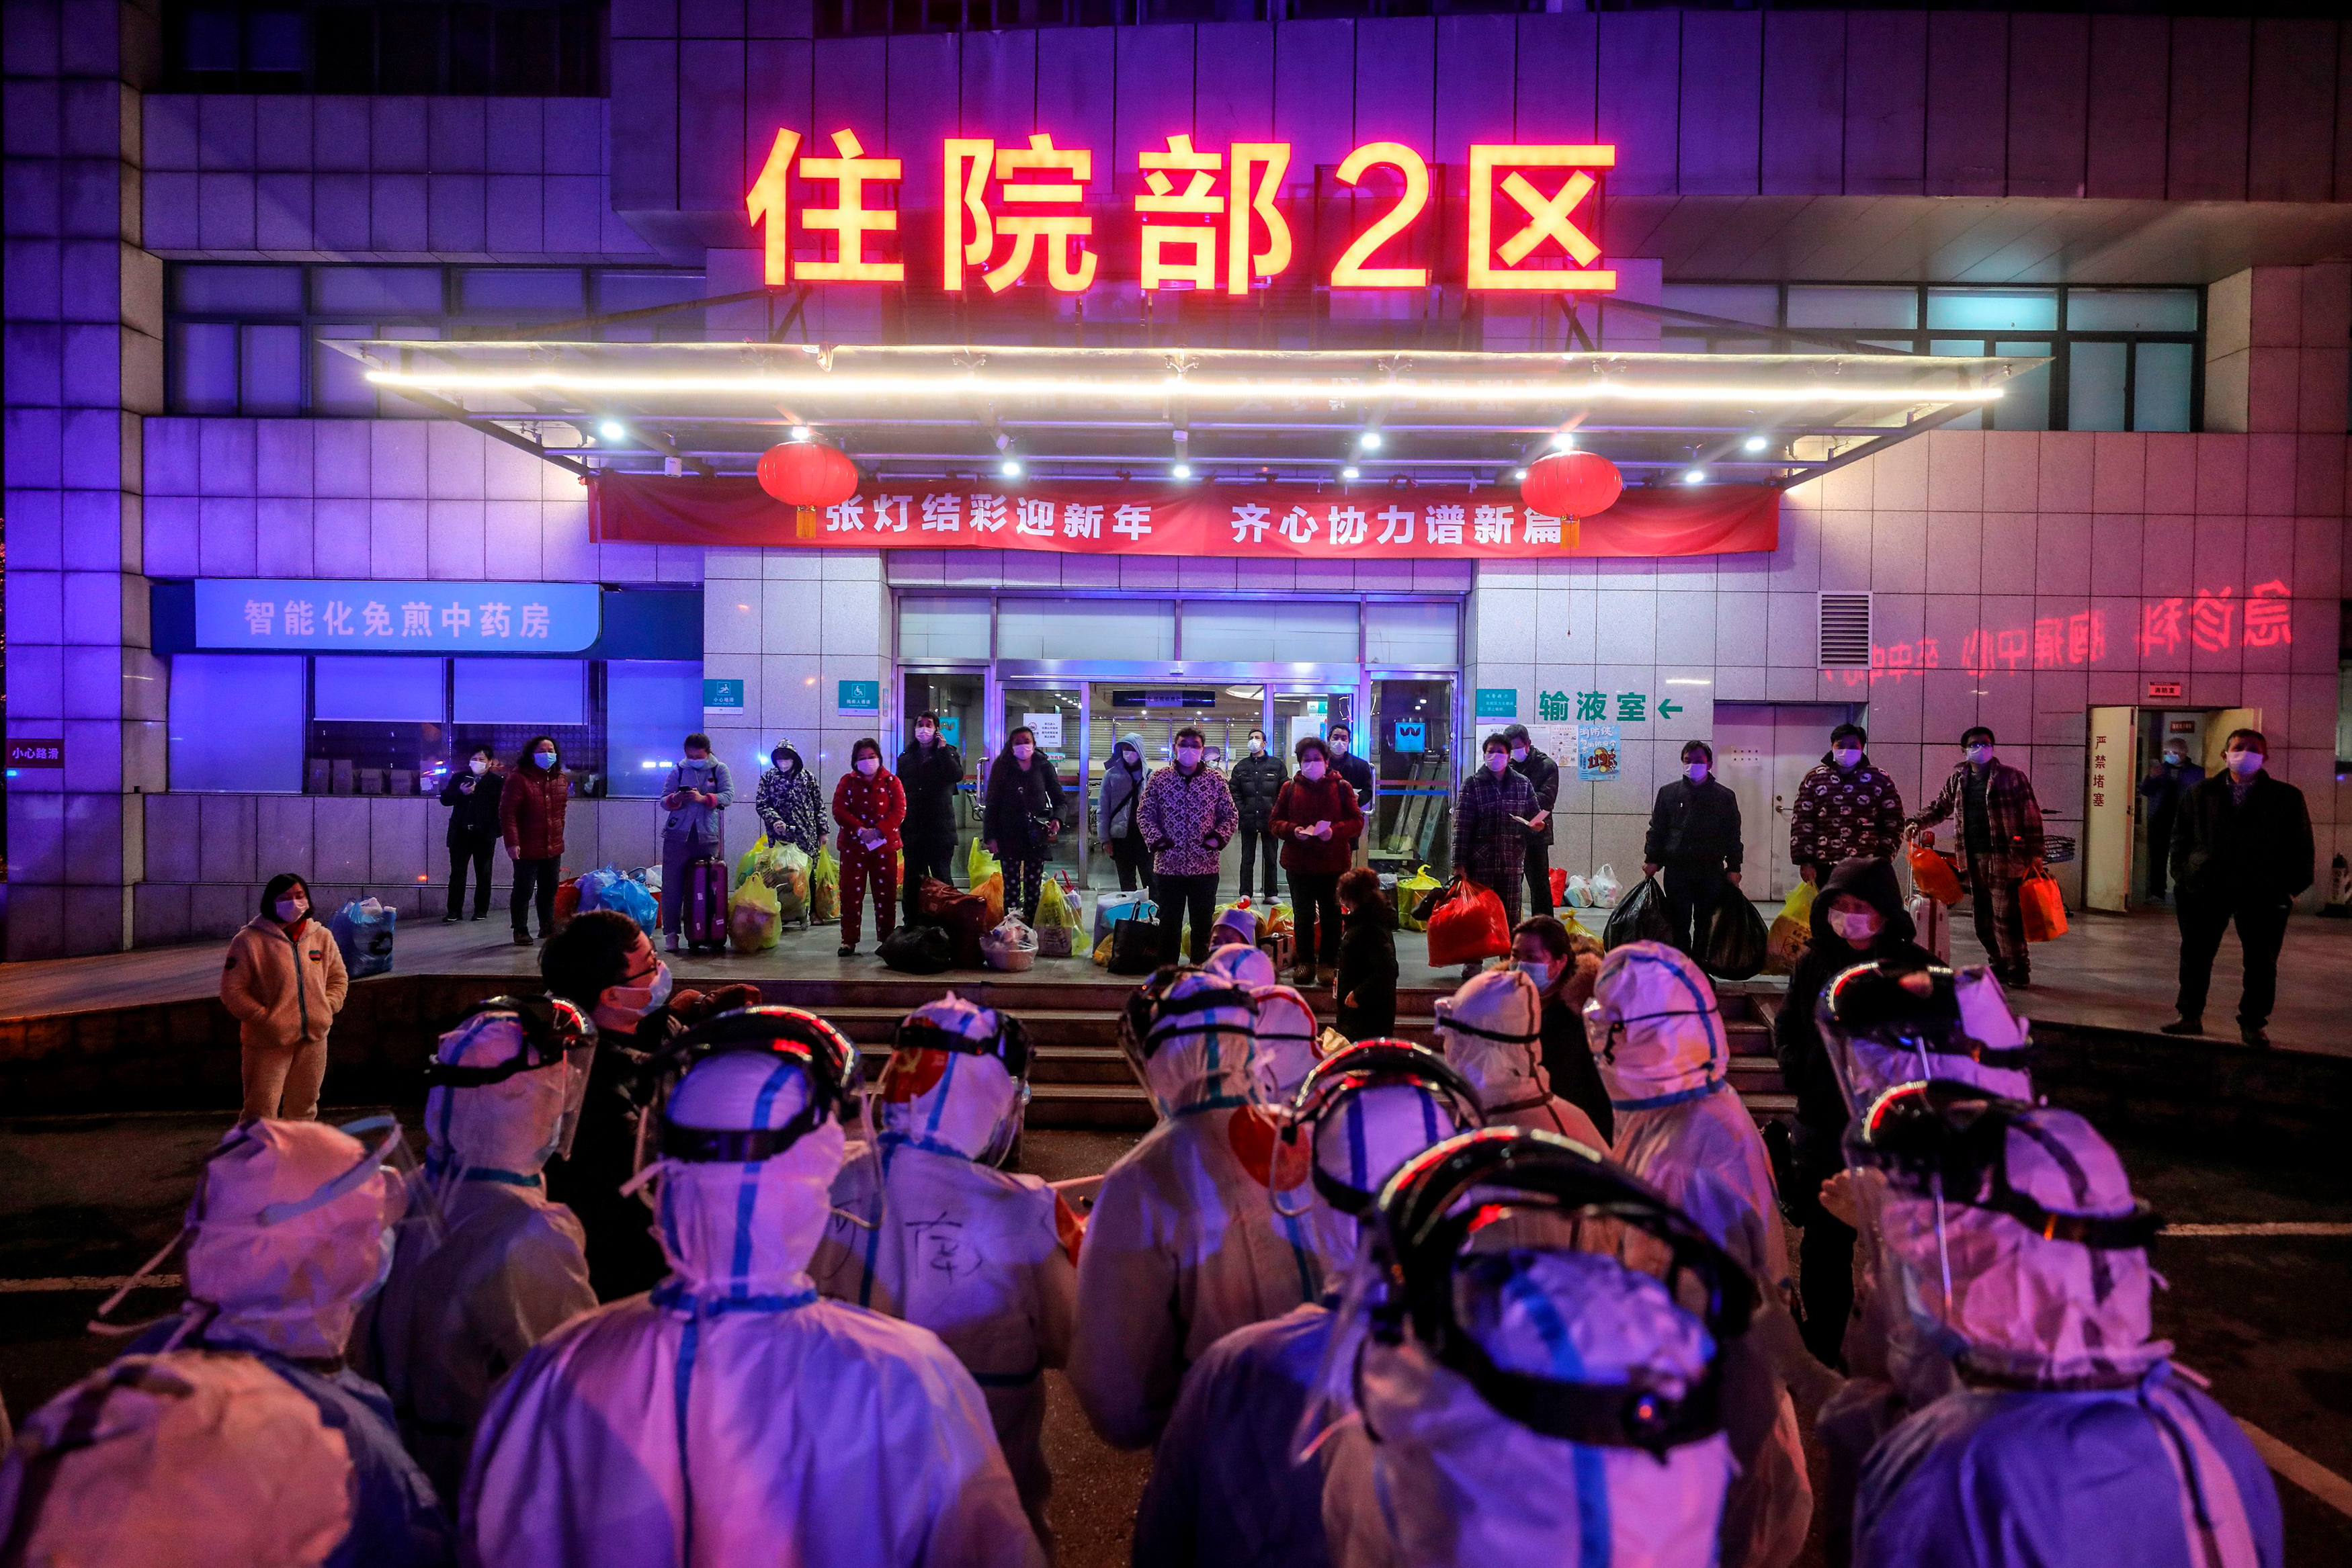 Coronavirus patients wait to be transferred to a newly built hospital in Wuhan, China, in early March 2020 (STR/AFP/Getty Images)